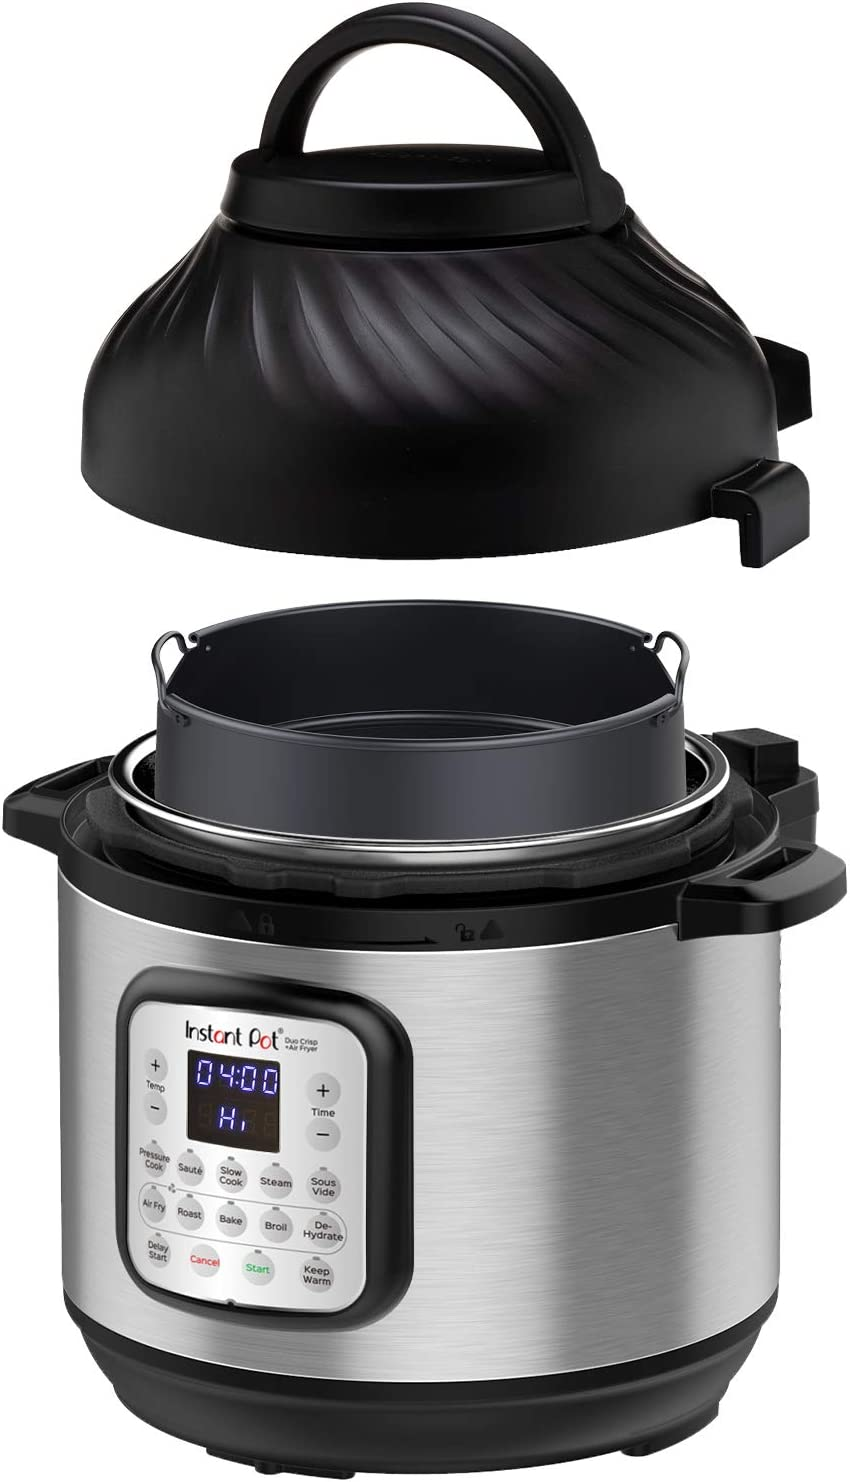 Instant Pot 8 Quart 11-in-1 Duo Crisp Pressure Cooker with Air Fryer